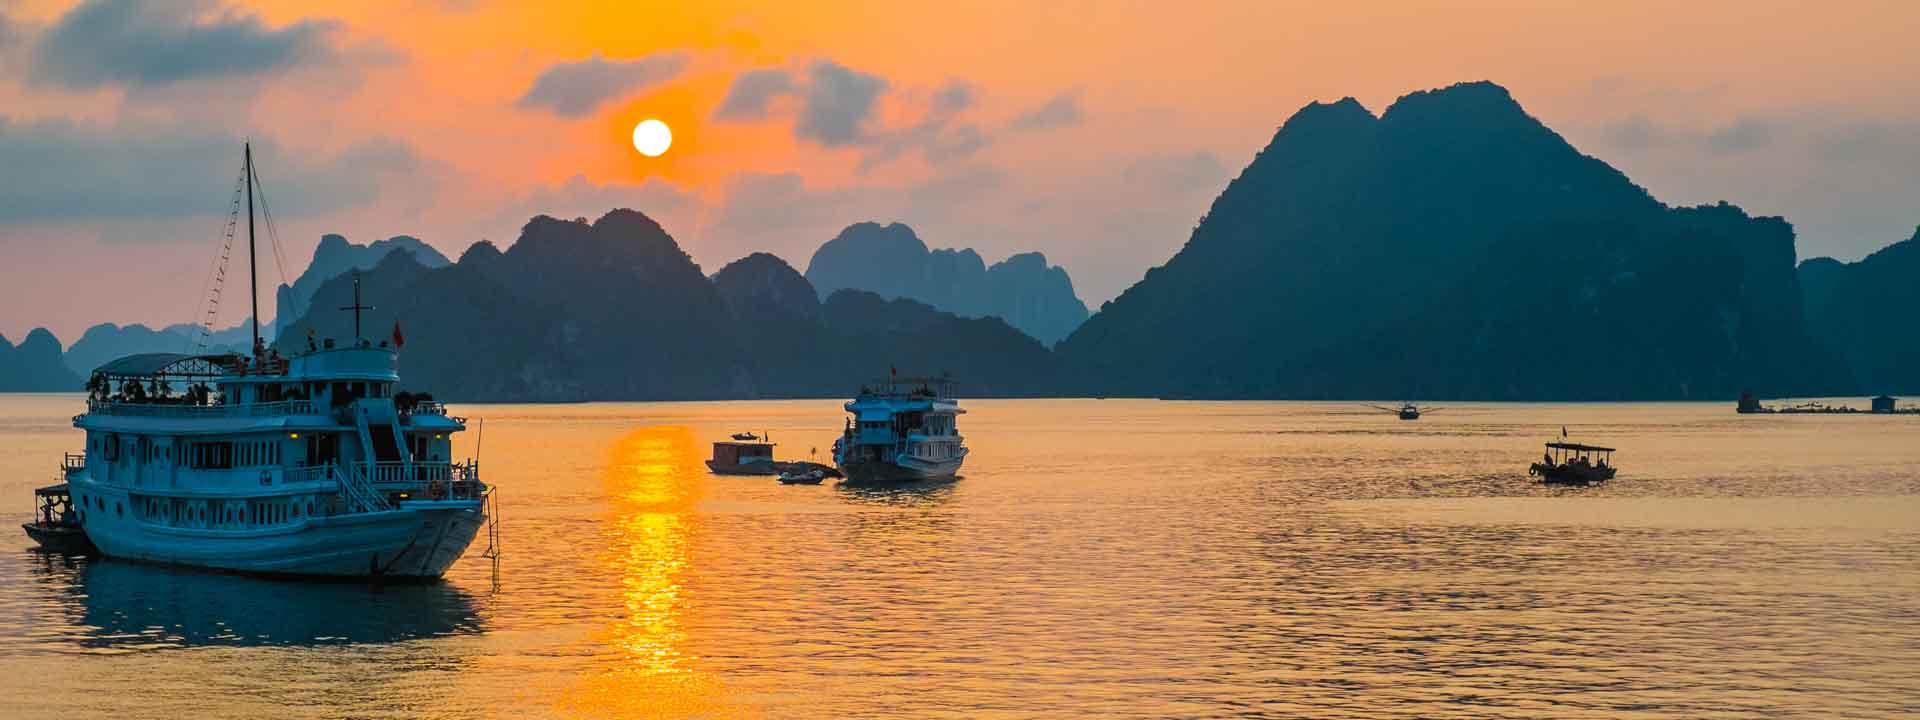 Explore the Untouched Areas of Halong Bay with Heritage Line Violet Junk 3 days